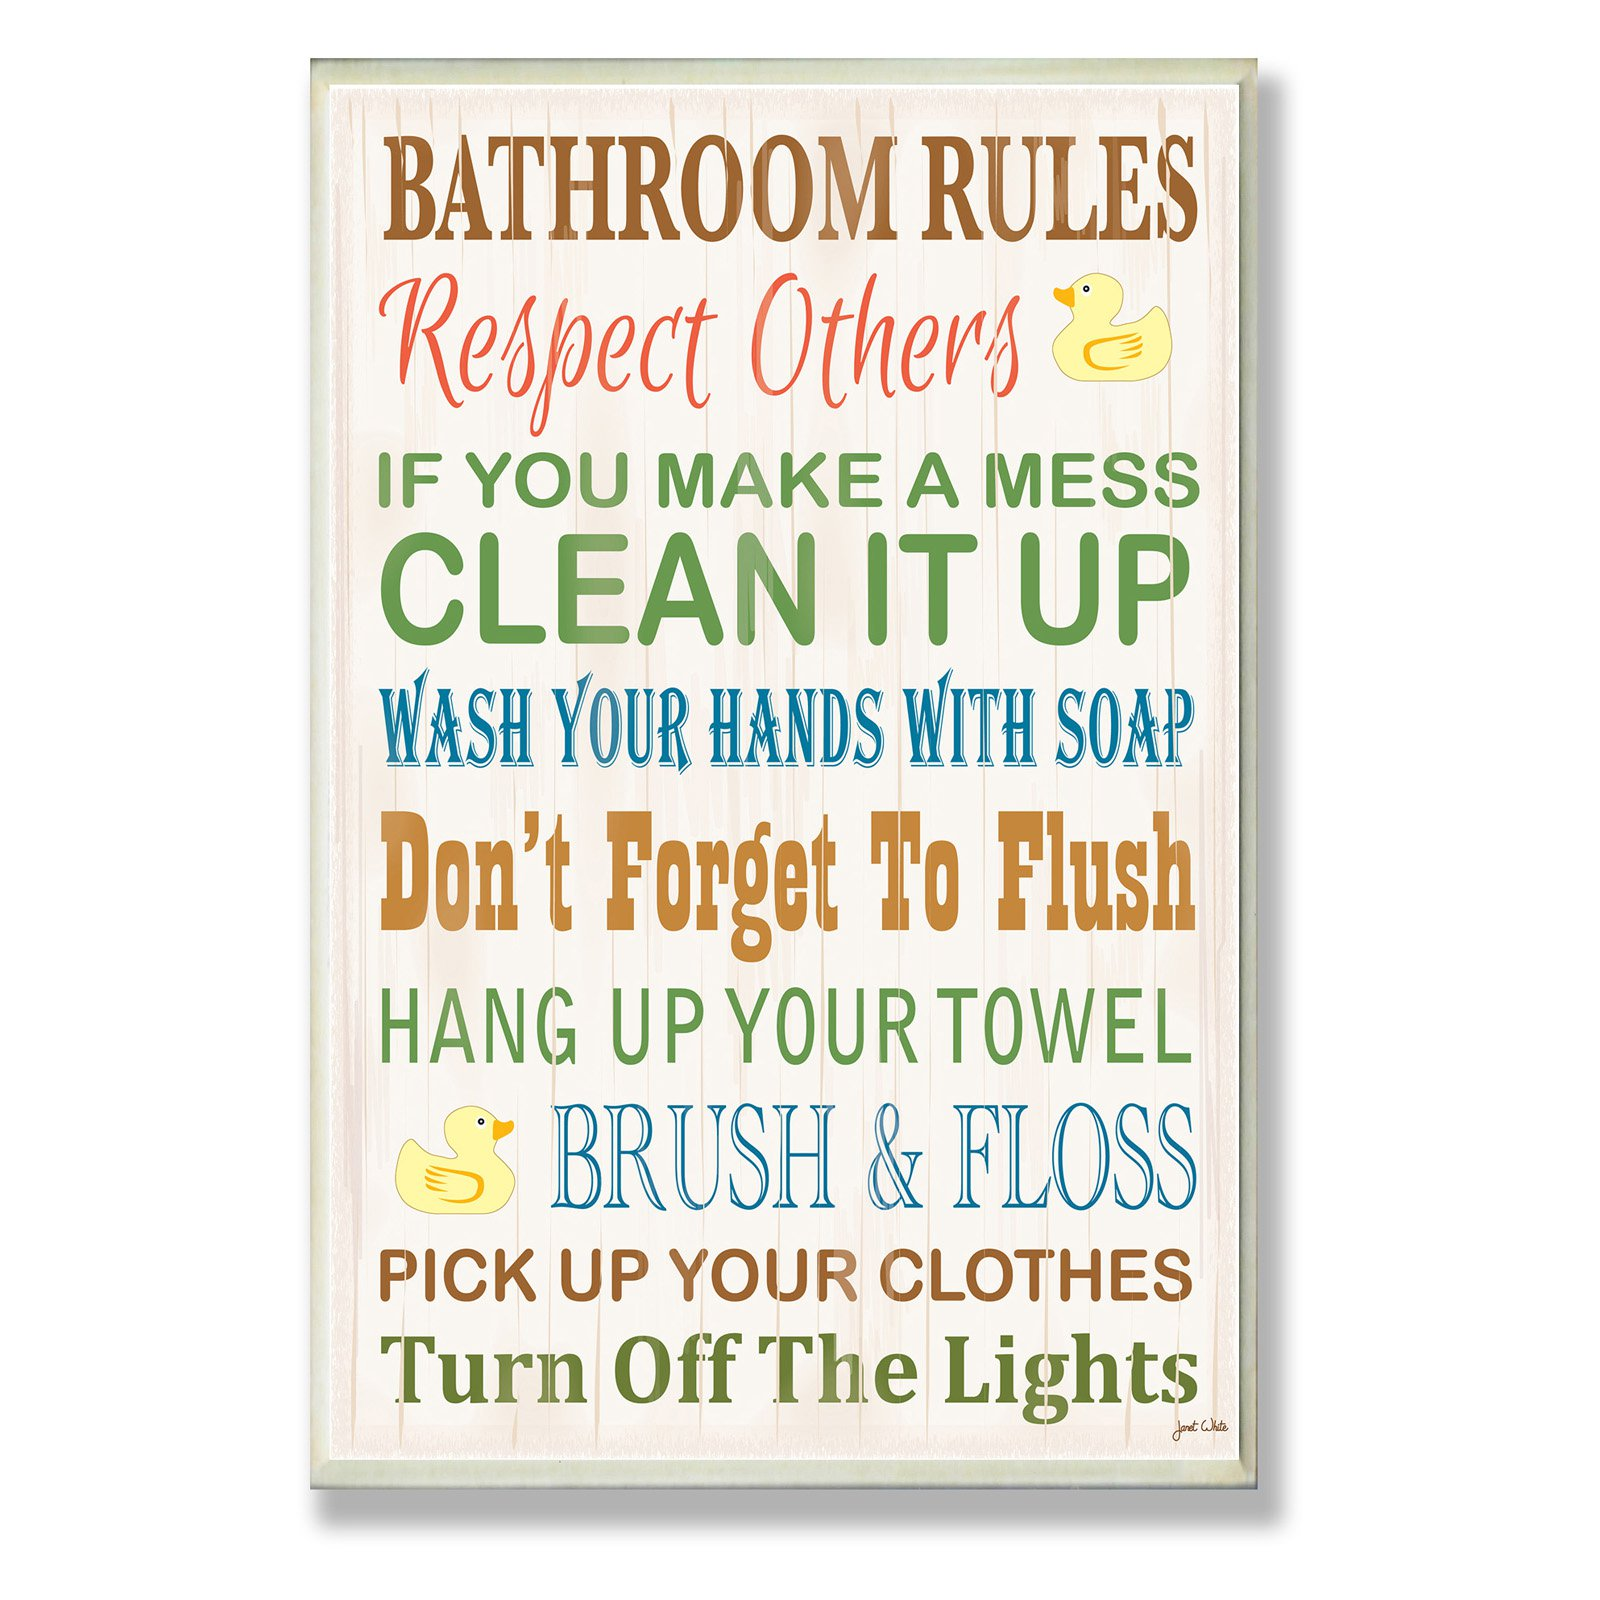 Bathroom Rules Rubber Ducky Bathroom Wall Plaque by Stupell Industries